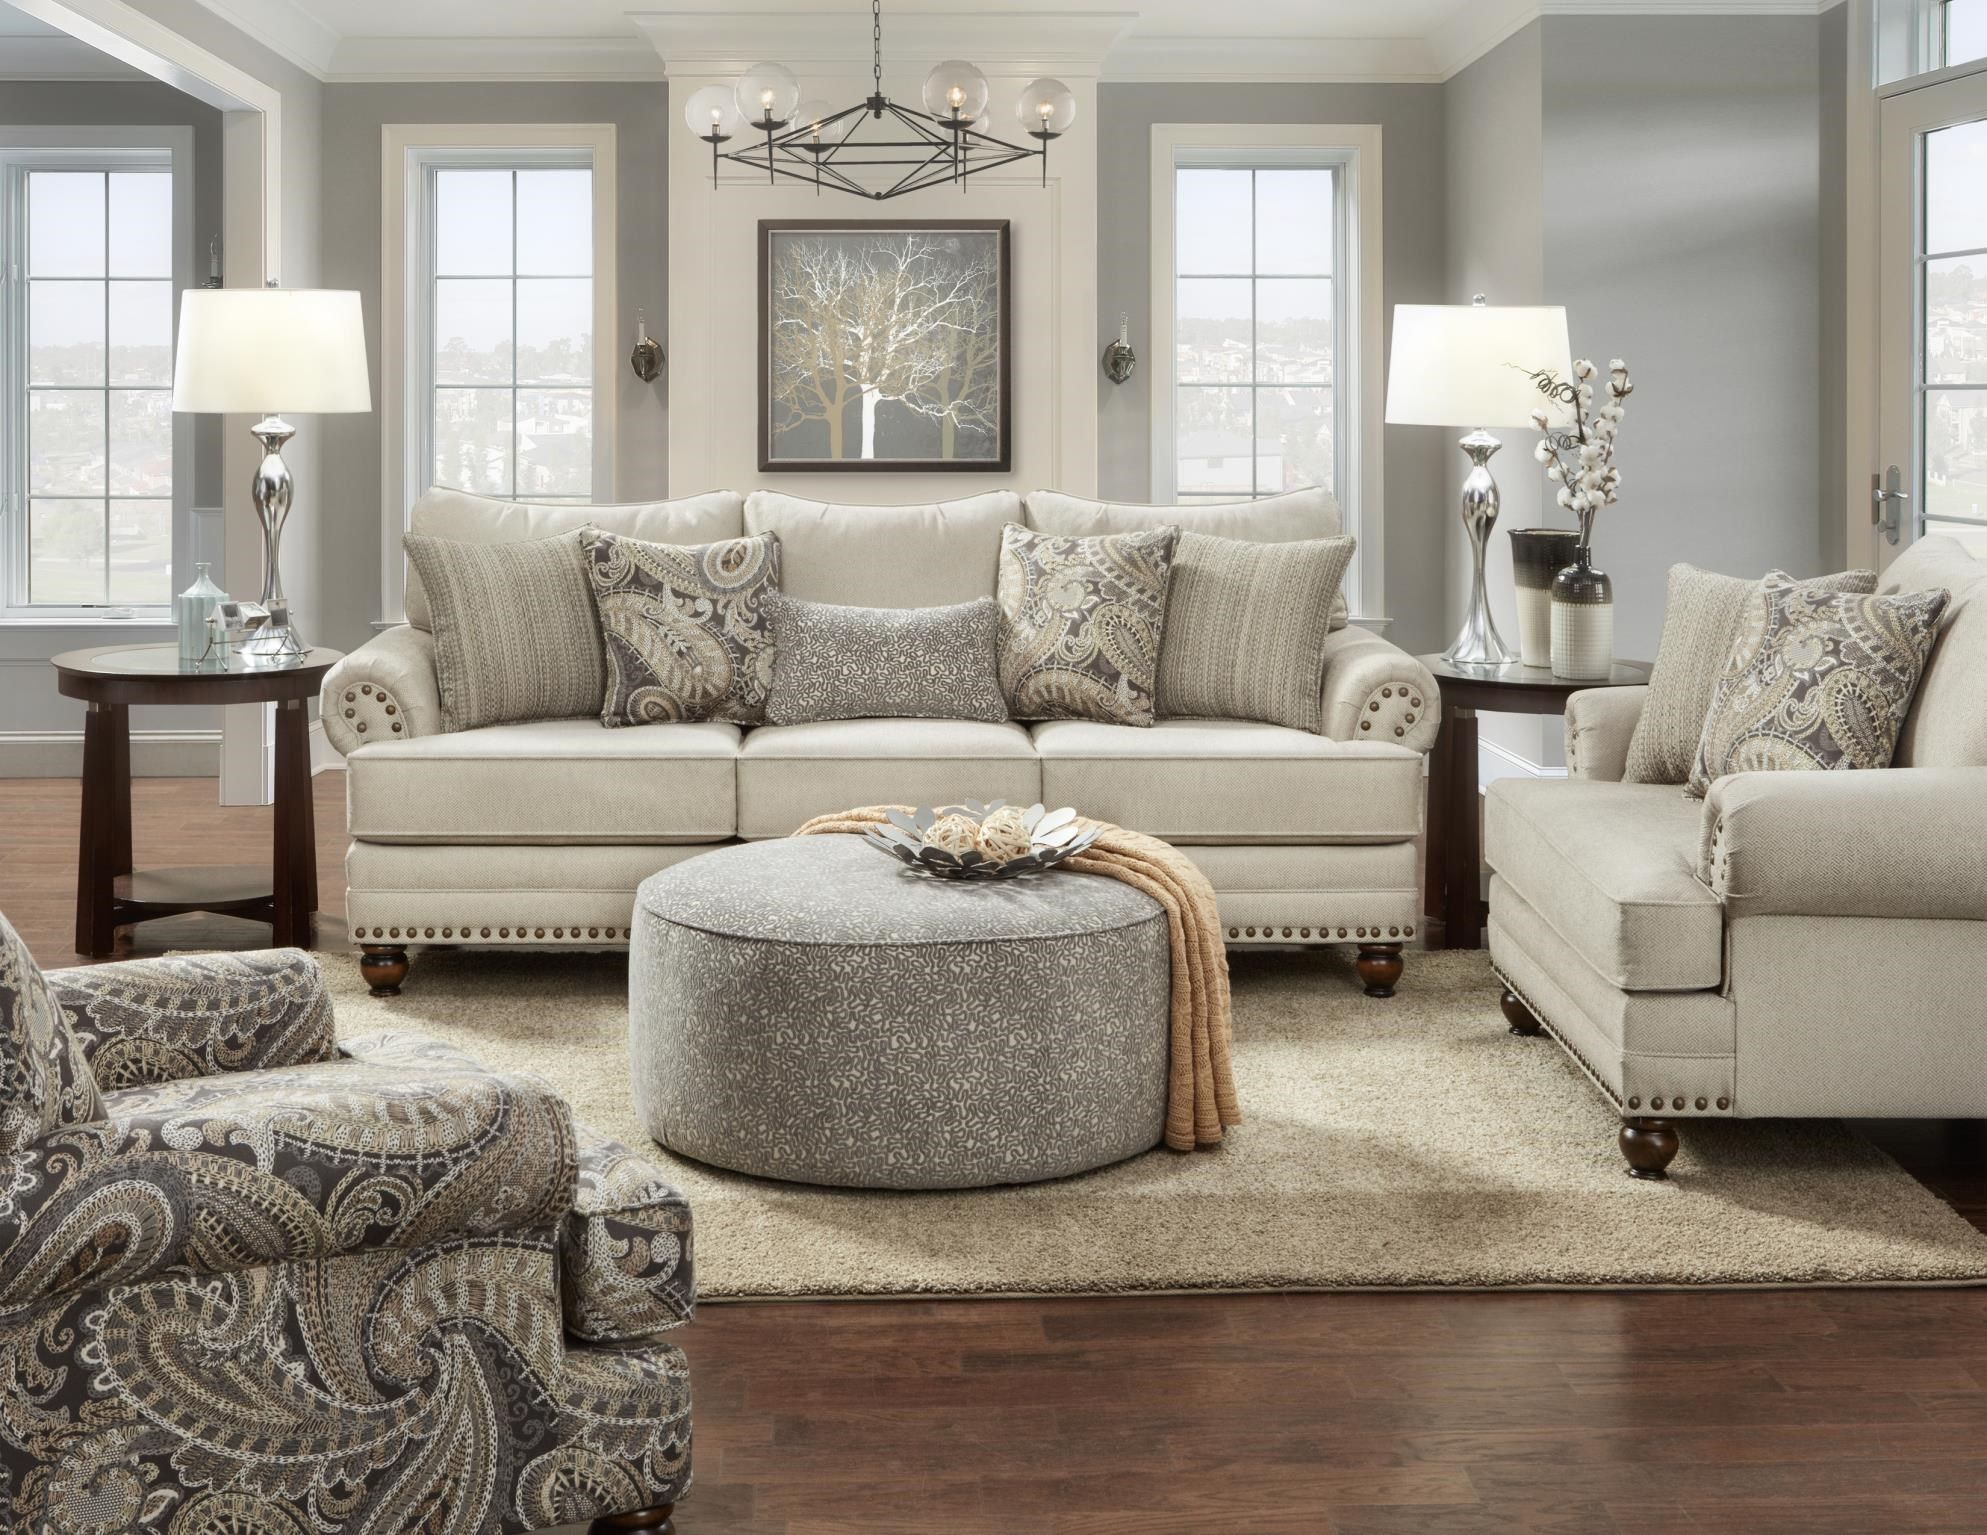 Fusion Furniture 2820 2820 Kpcarys Doe Cary S Doe Traditional Sofa With Nailhead Trim Great A 4 Piece Living Room Set Farm House Living Room Living Room Grey